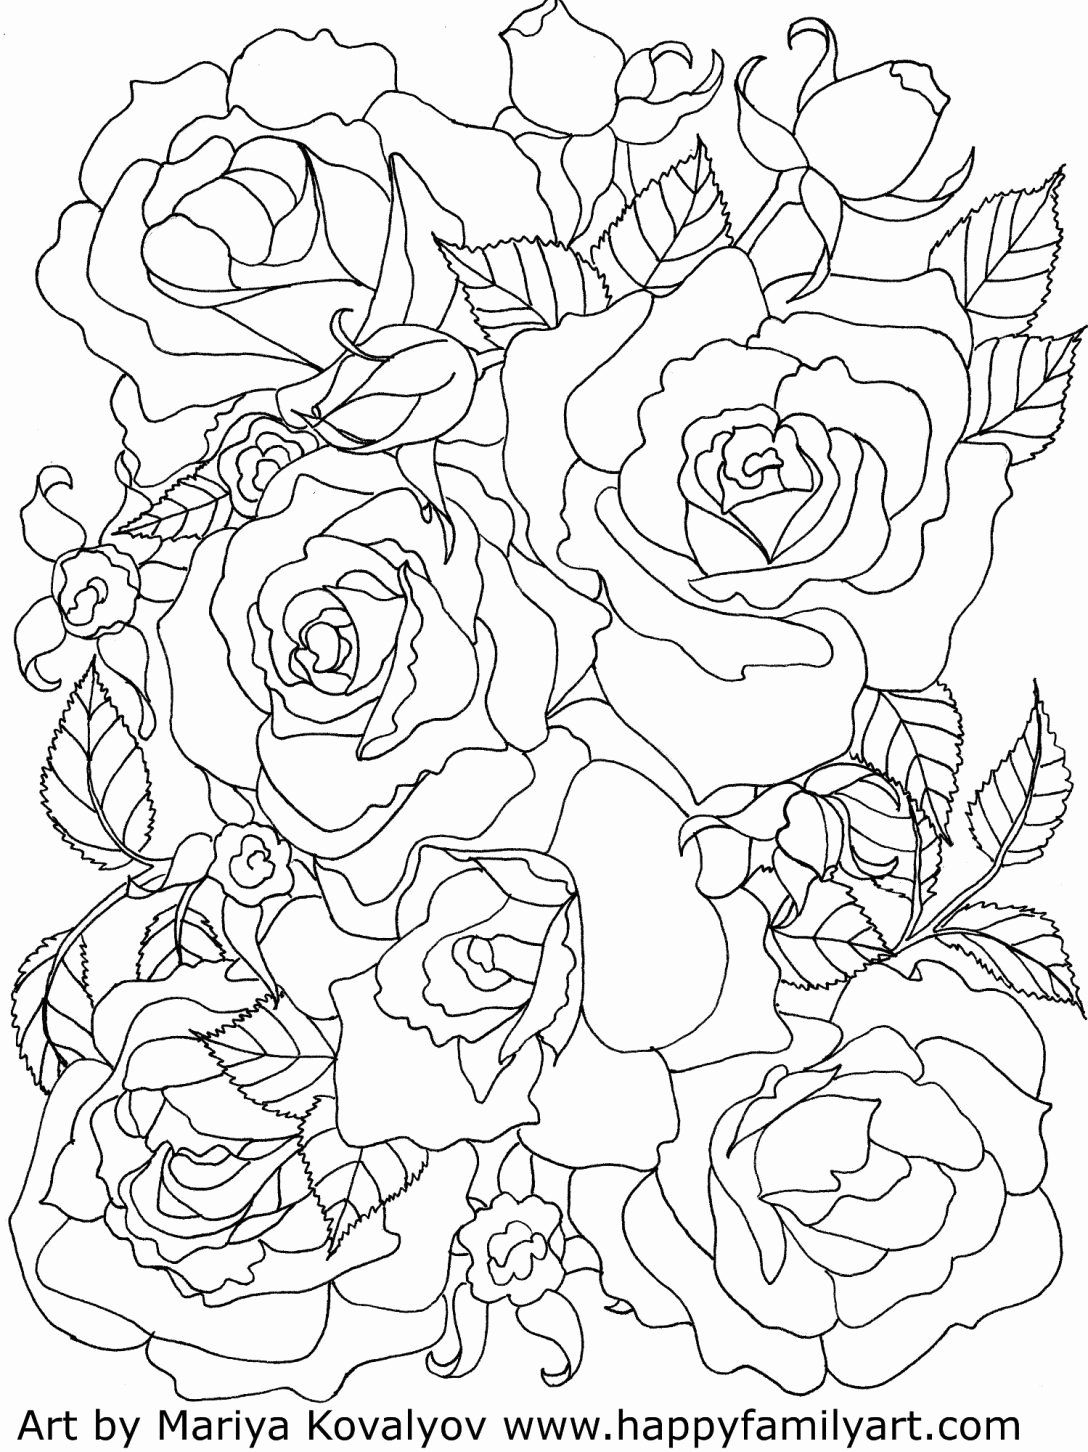 Coloring Mandala Flowers Lovely Free Printable Flag Day Coloring Pages Best Of Flower In 2020 Rose Coloring Pages Flower Coloring Pages Printable Flower Coloring Pages